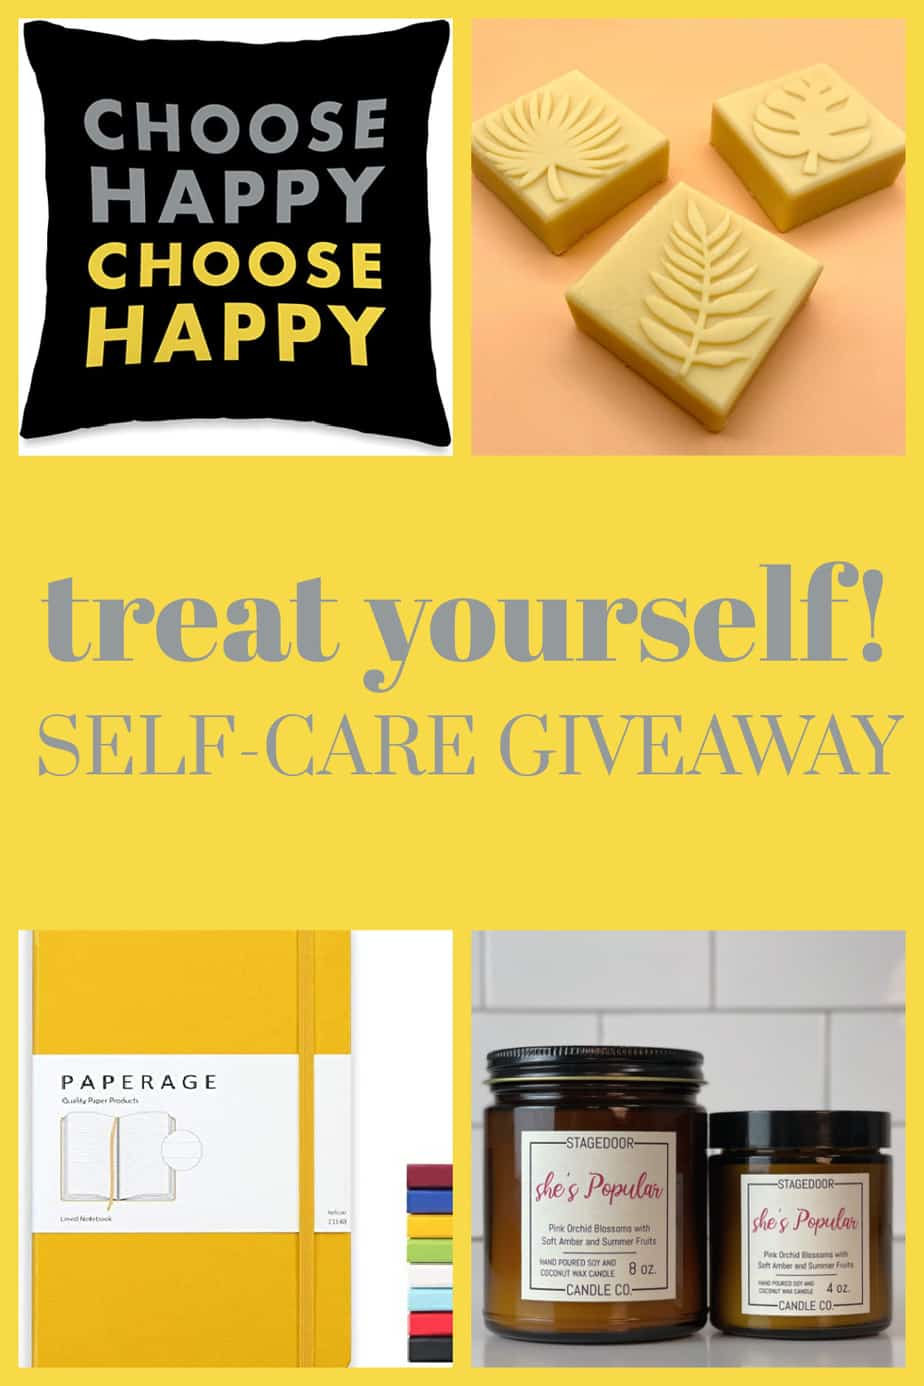 self care ideas : giveaway including self care journal and self care products that smell good!